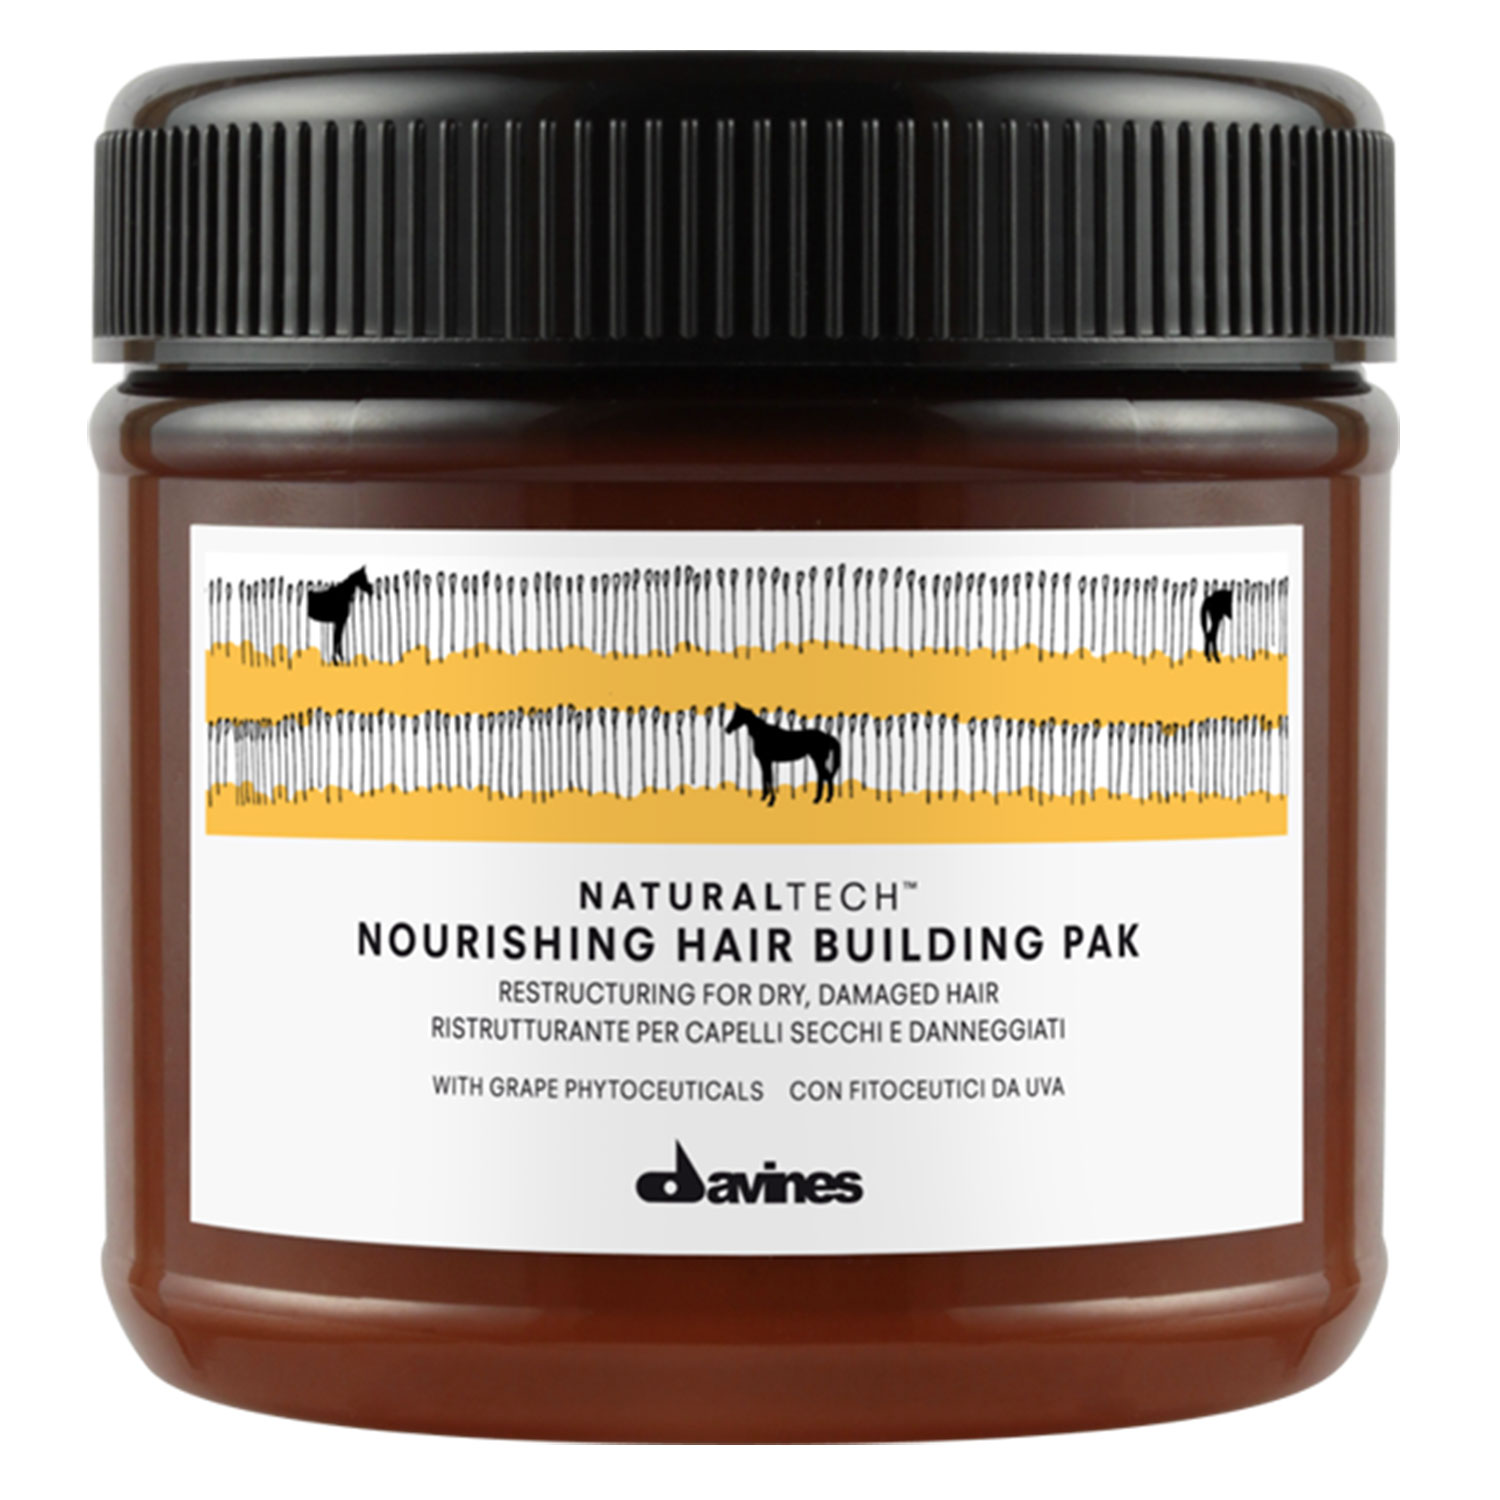 Naturaltech - Nourishing Hair Building Pak